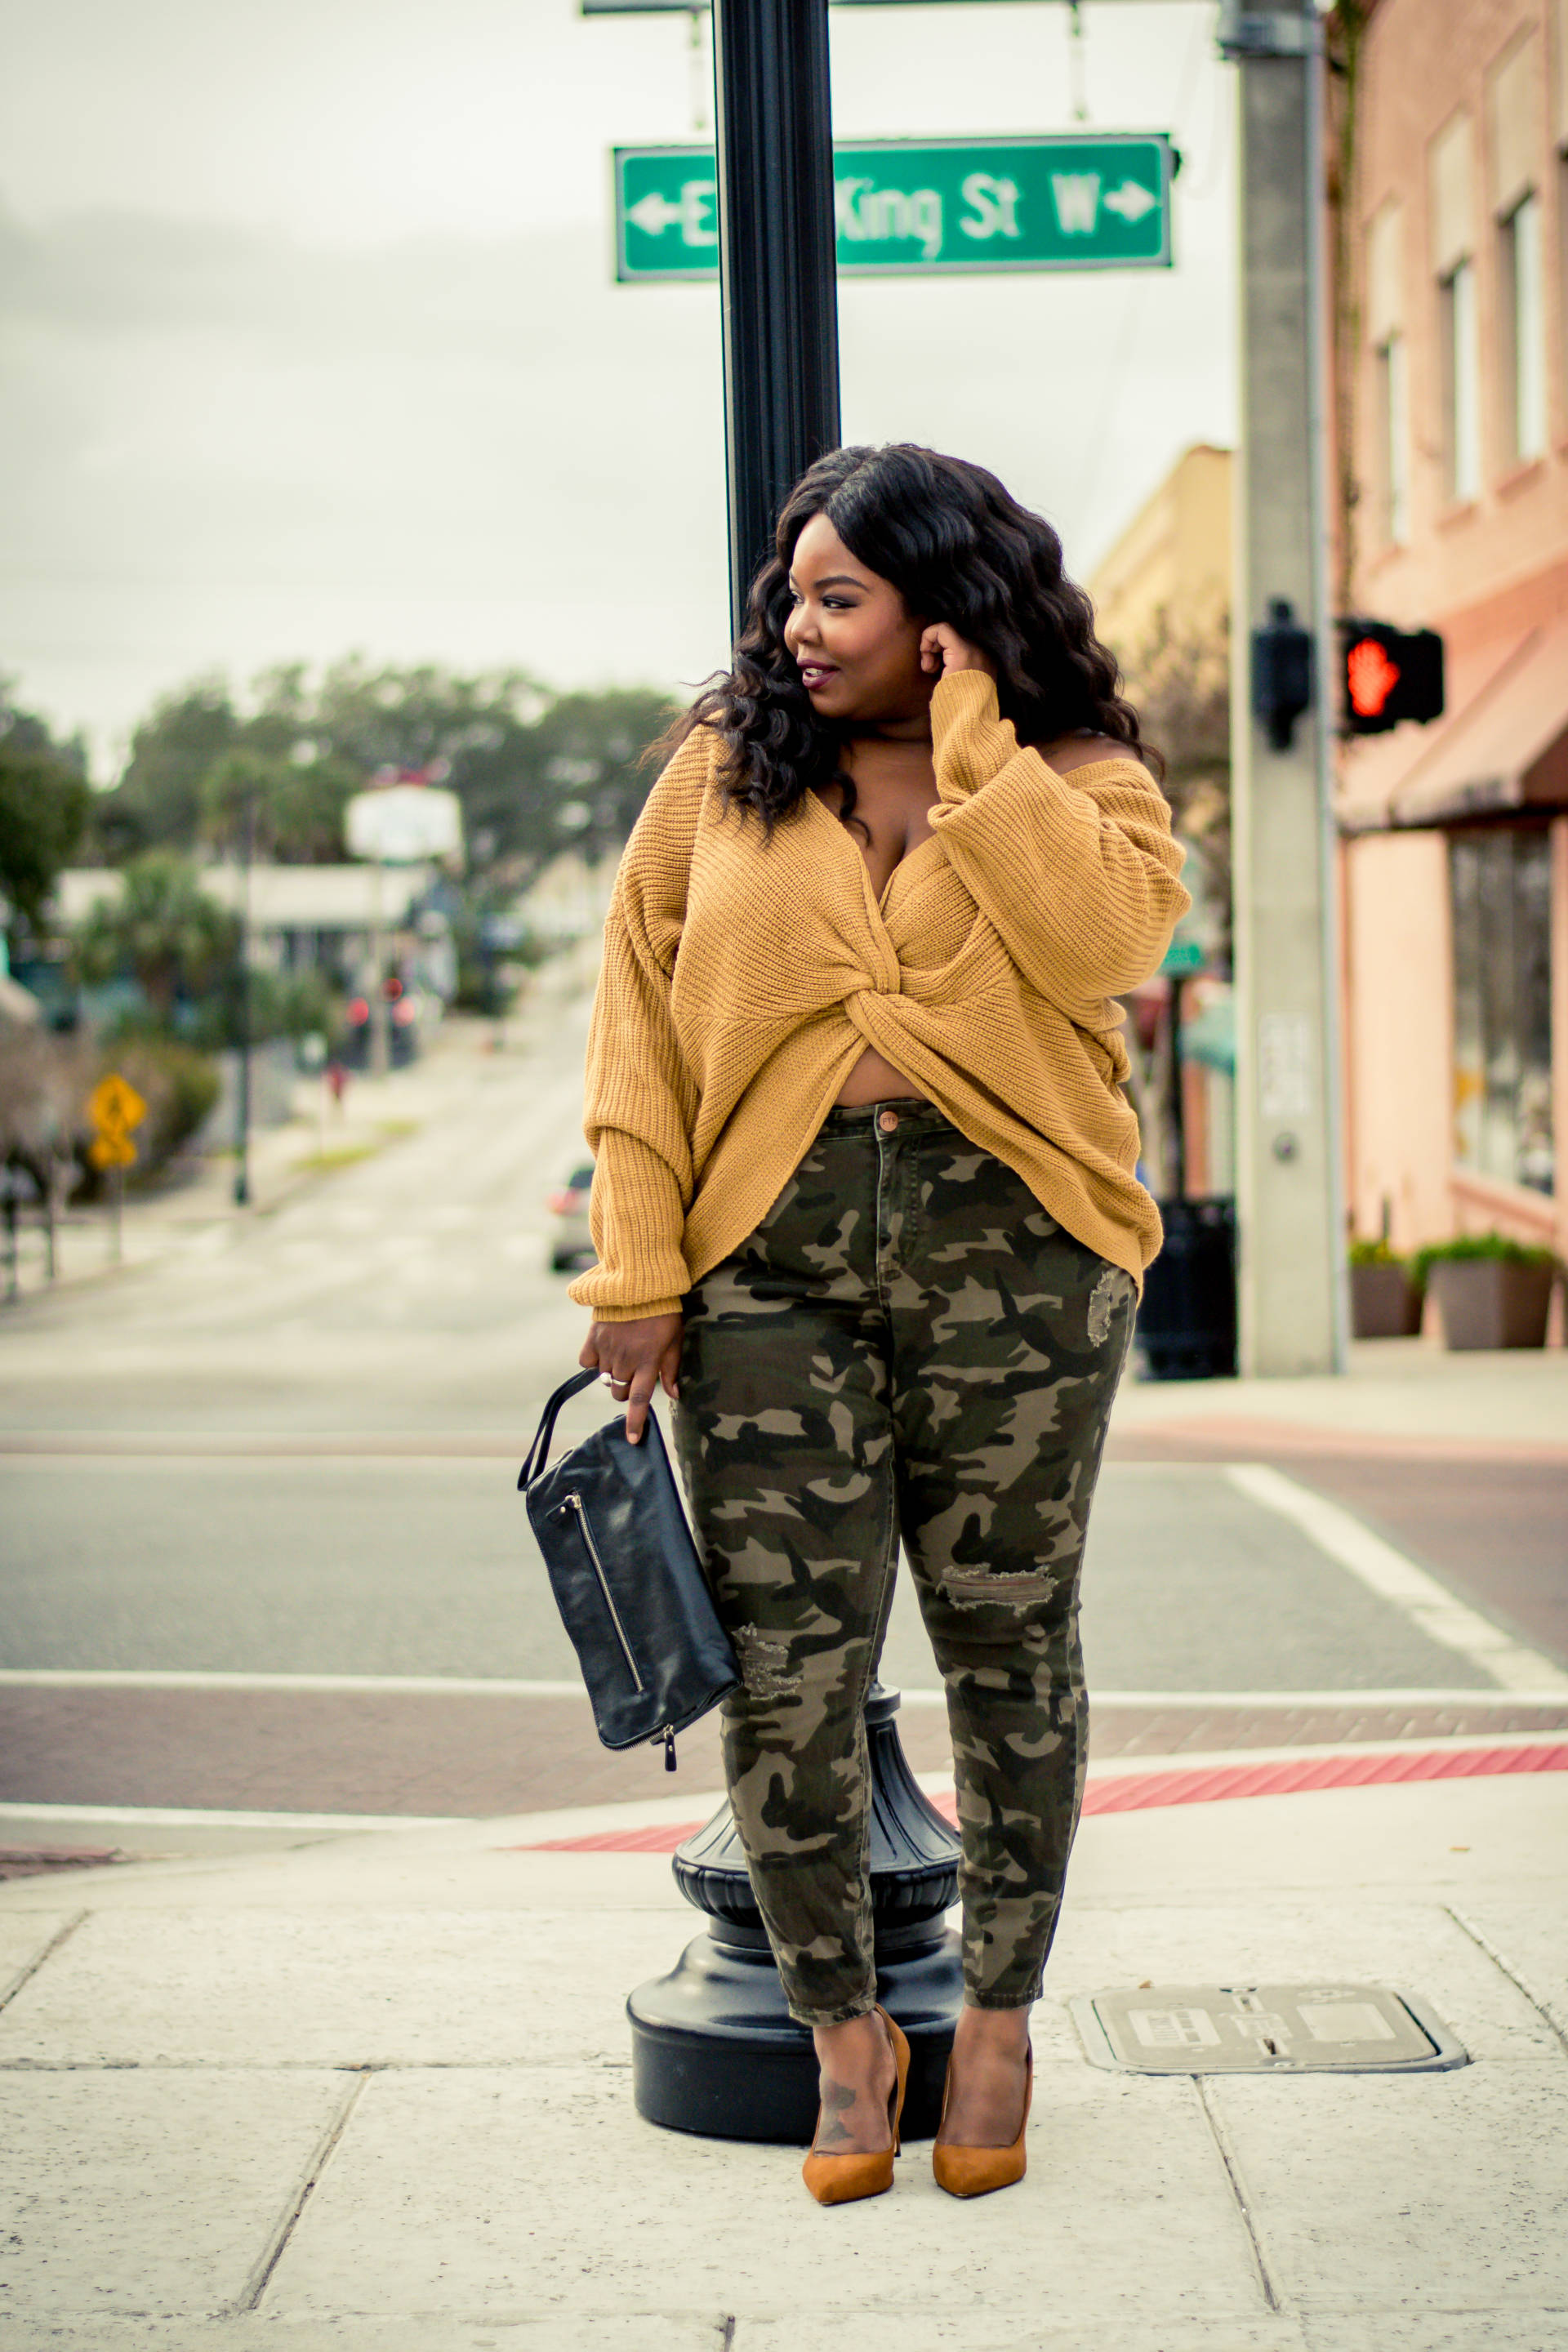 How to Style Camo